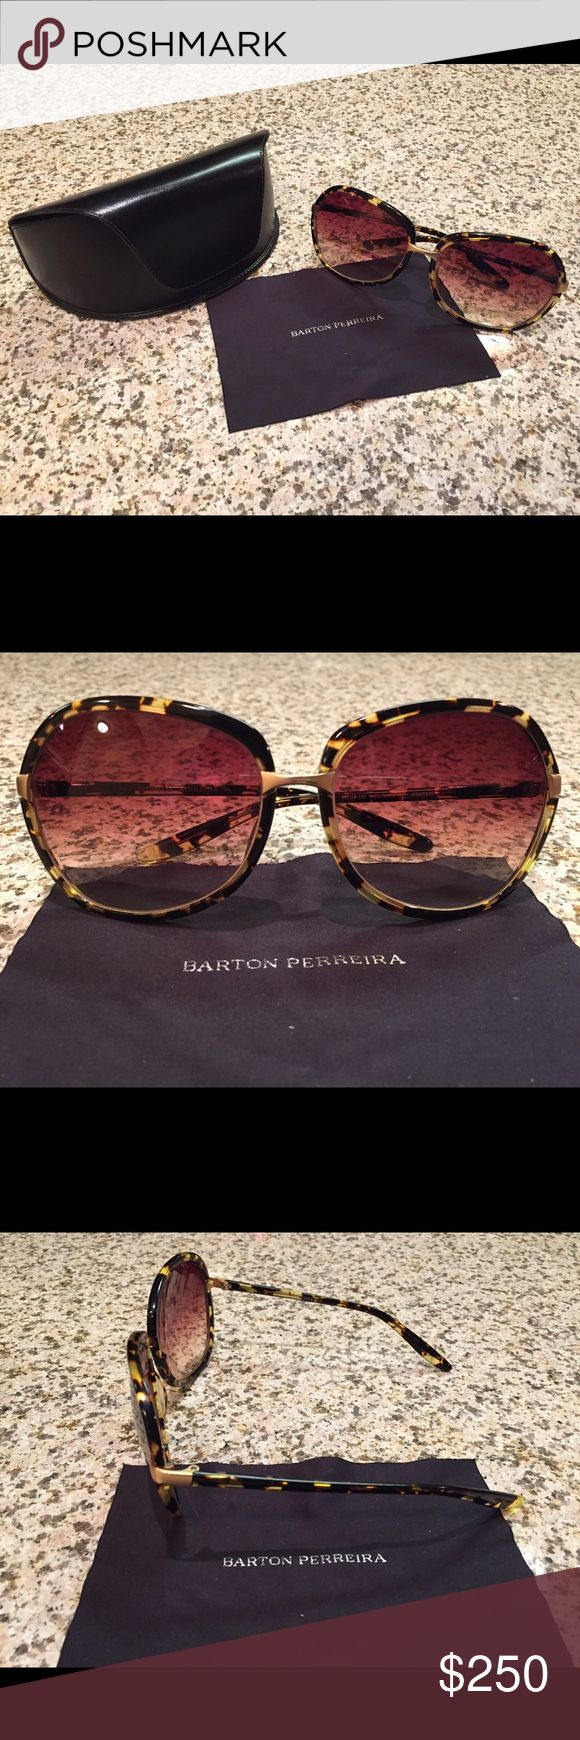 Barton Perreira Sunglasses Barton Perreira tortoise shell sunglasses in fantastic condition. Original case and glasses wipe included. Barton Perreira Accessories Sunglasses